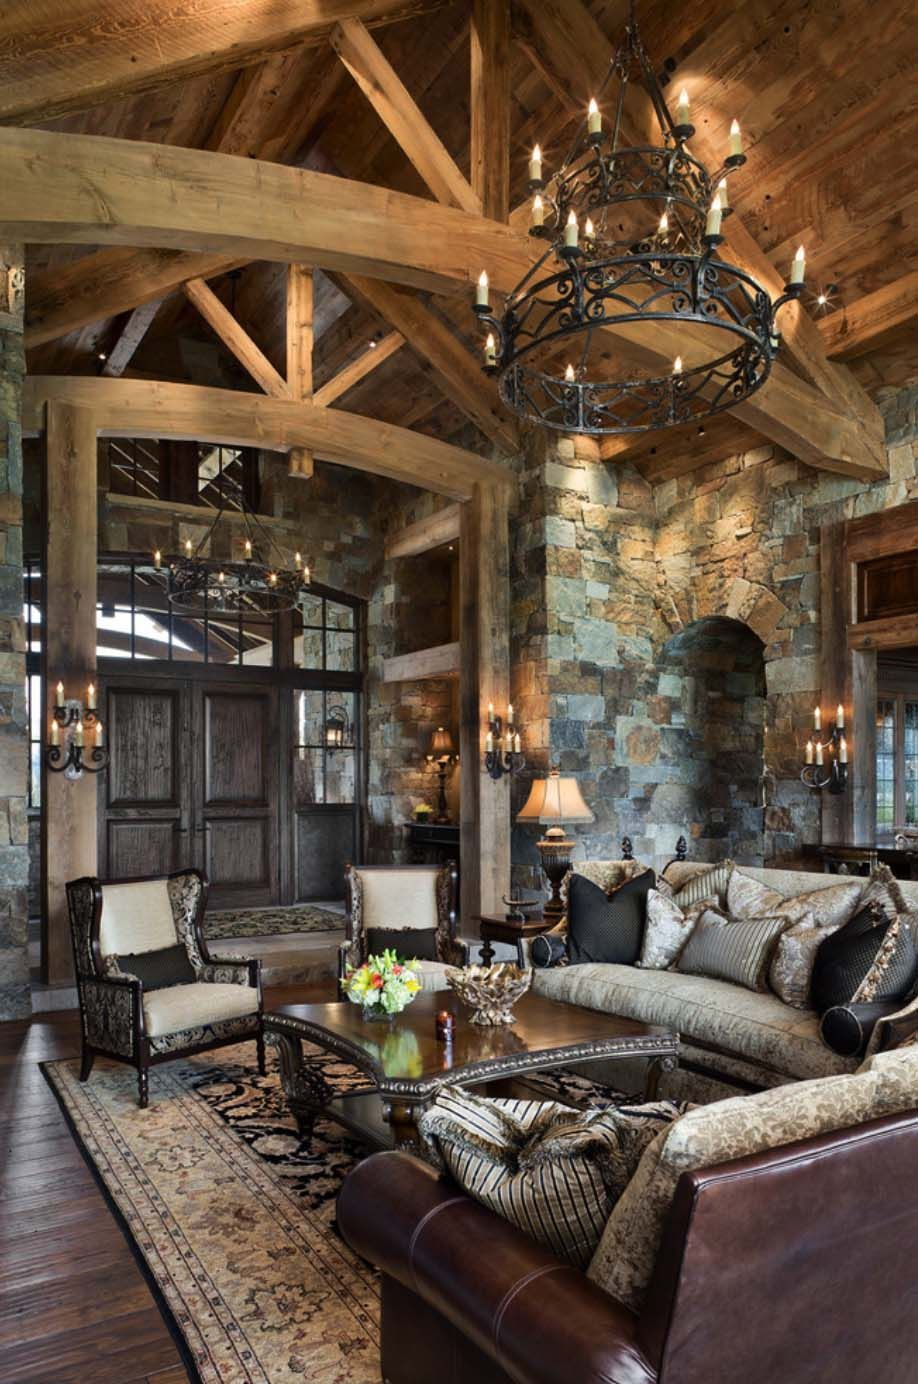 Home Decor Interior Design: Rustic Yet Refined Mountain Home Surrounded By Montana's